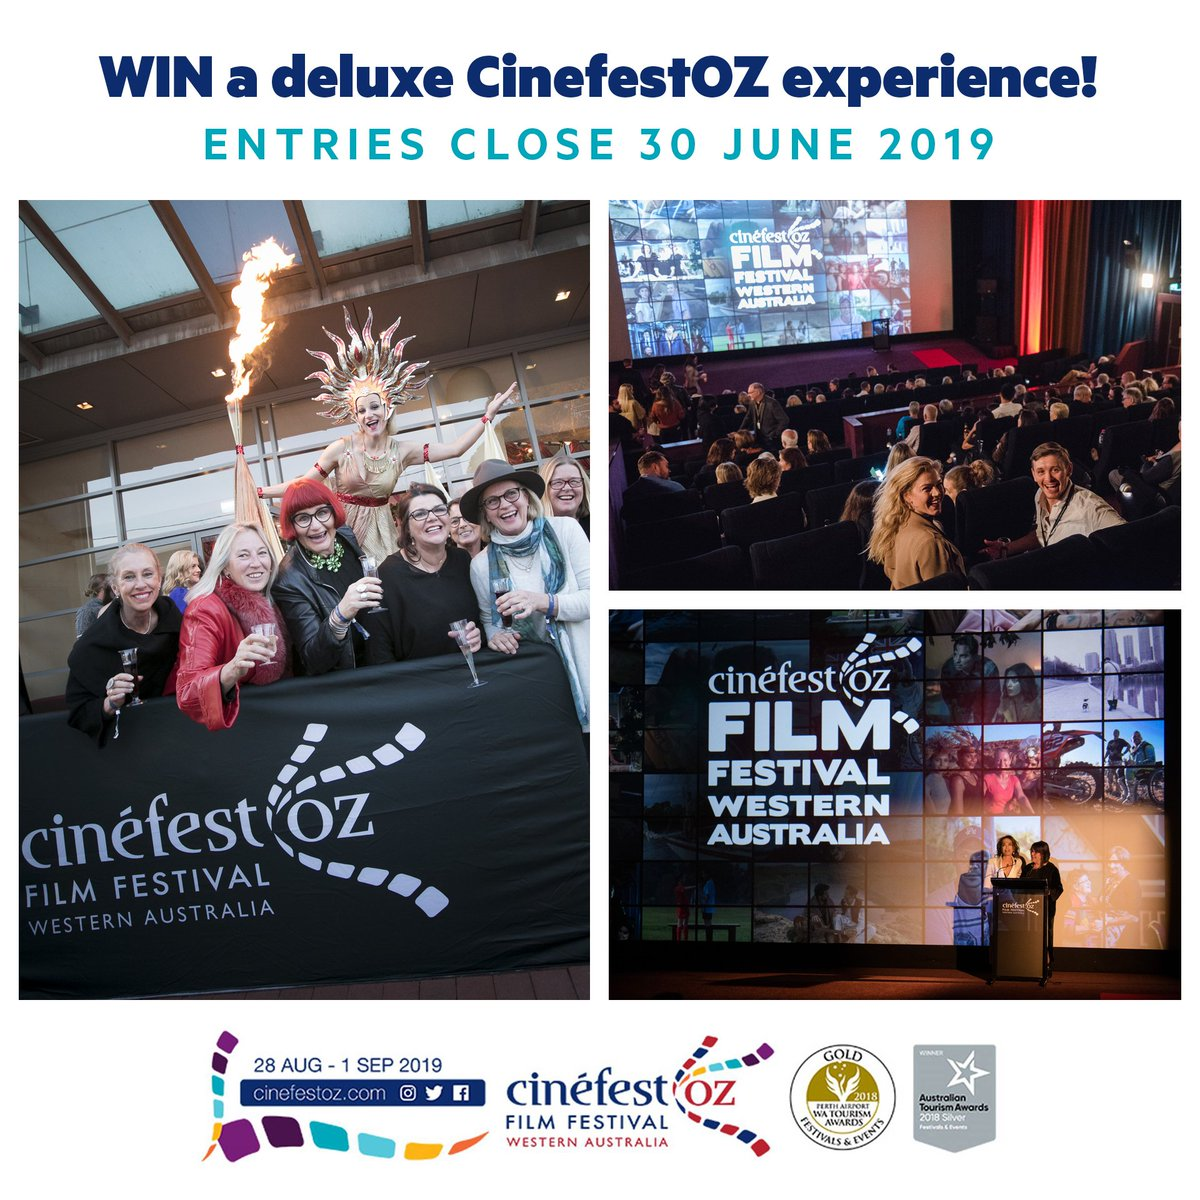 😎 Get treated like the star you are!  @cinefestoz are offering the chance for you and a friend to win a DELUXE CinefestOZ experience, including cinepasses, VIP wine tasting and more! 🥂💃✨  Entries close Sunday, 30 June 2019! 🏆 http://cinefestoz.com/cinefestoz-comp